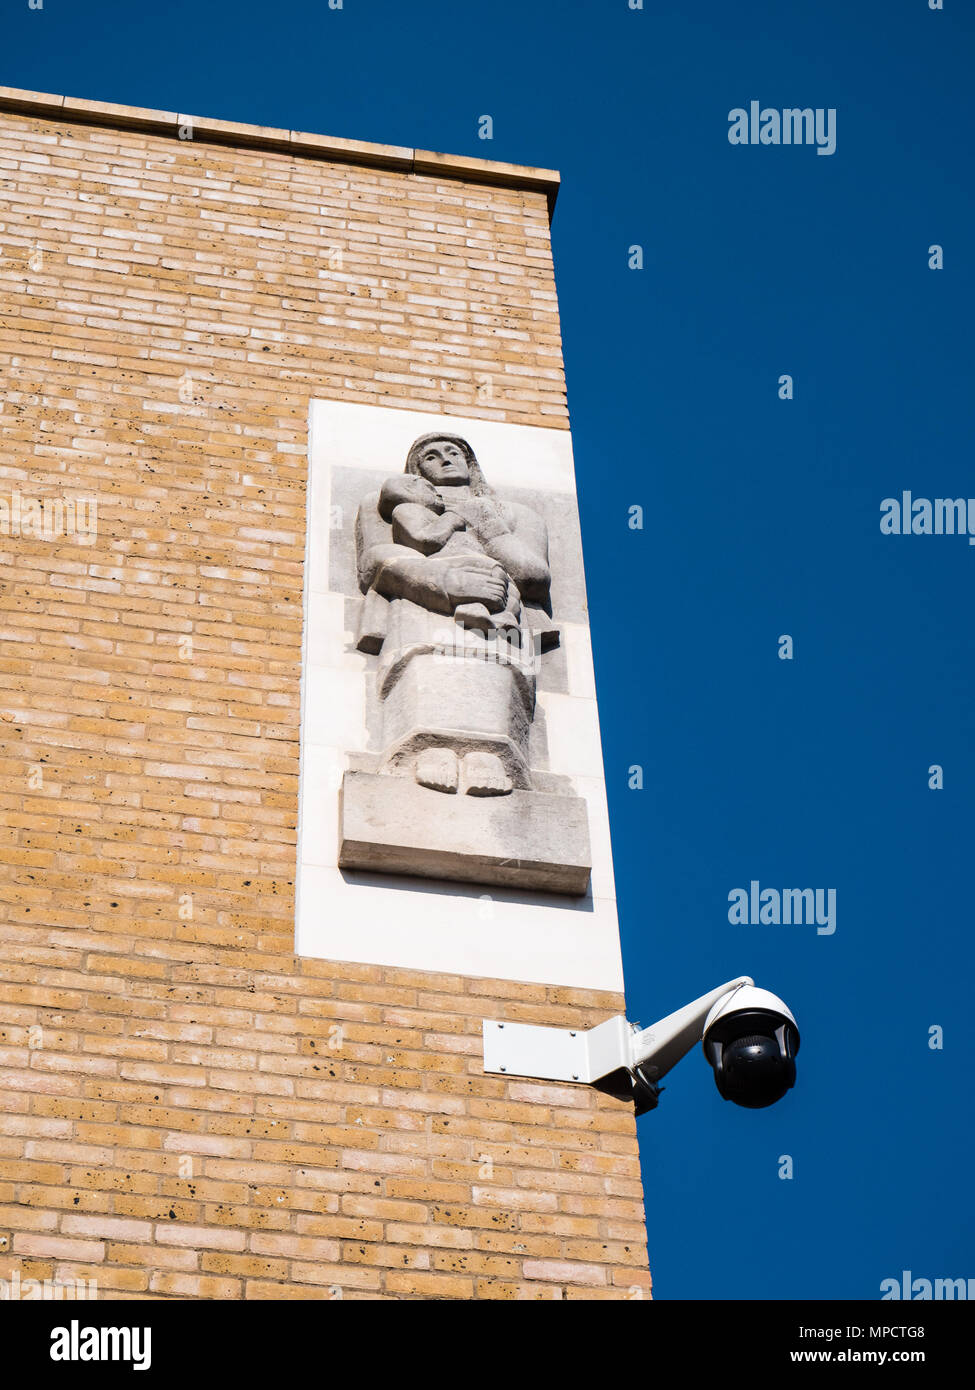 Radcliffe Observatory Quarter, CCTV Camera on New Building, Oxford, Oxfordshire, England, UK, GB. - Stock Image